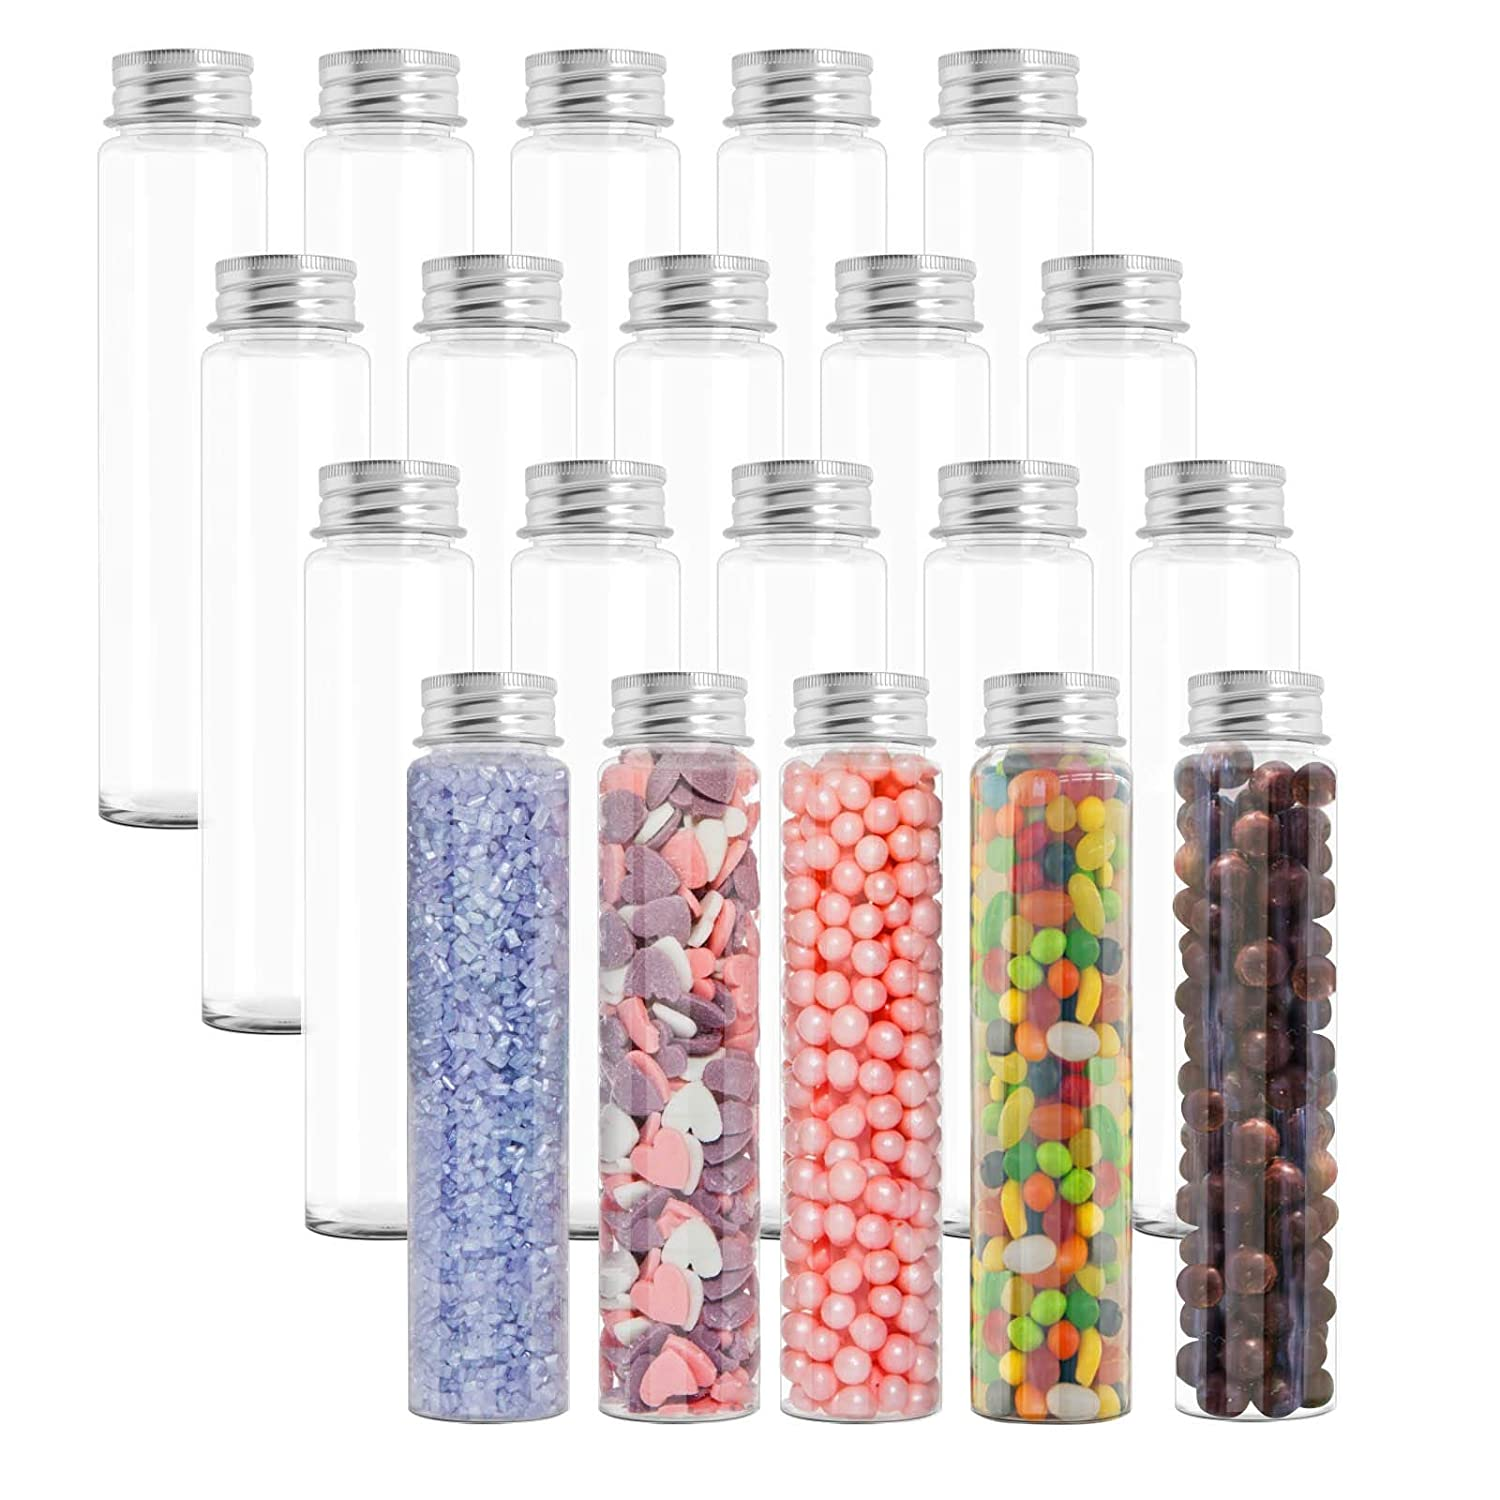 Temedon 20pcs Plastic Test Tubes, 34×150mm(110ml) Flat Test Tubes with Screw Cap for Bath Salts, Gumball Candy Storage, Hot Chocolate, Plant Propagation